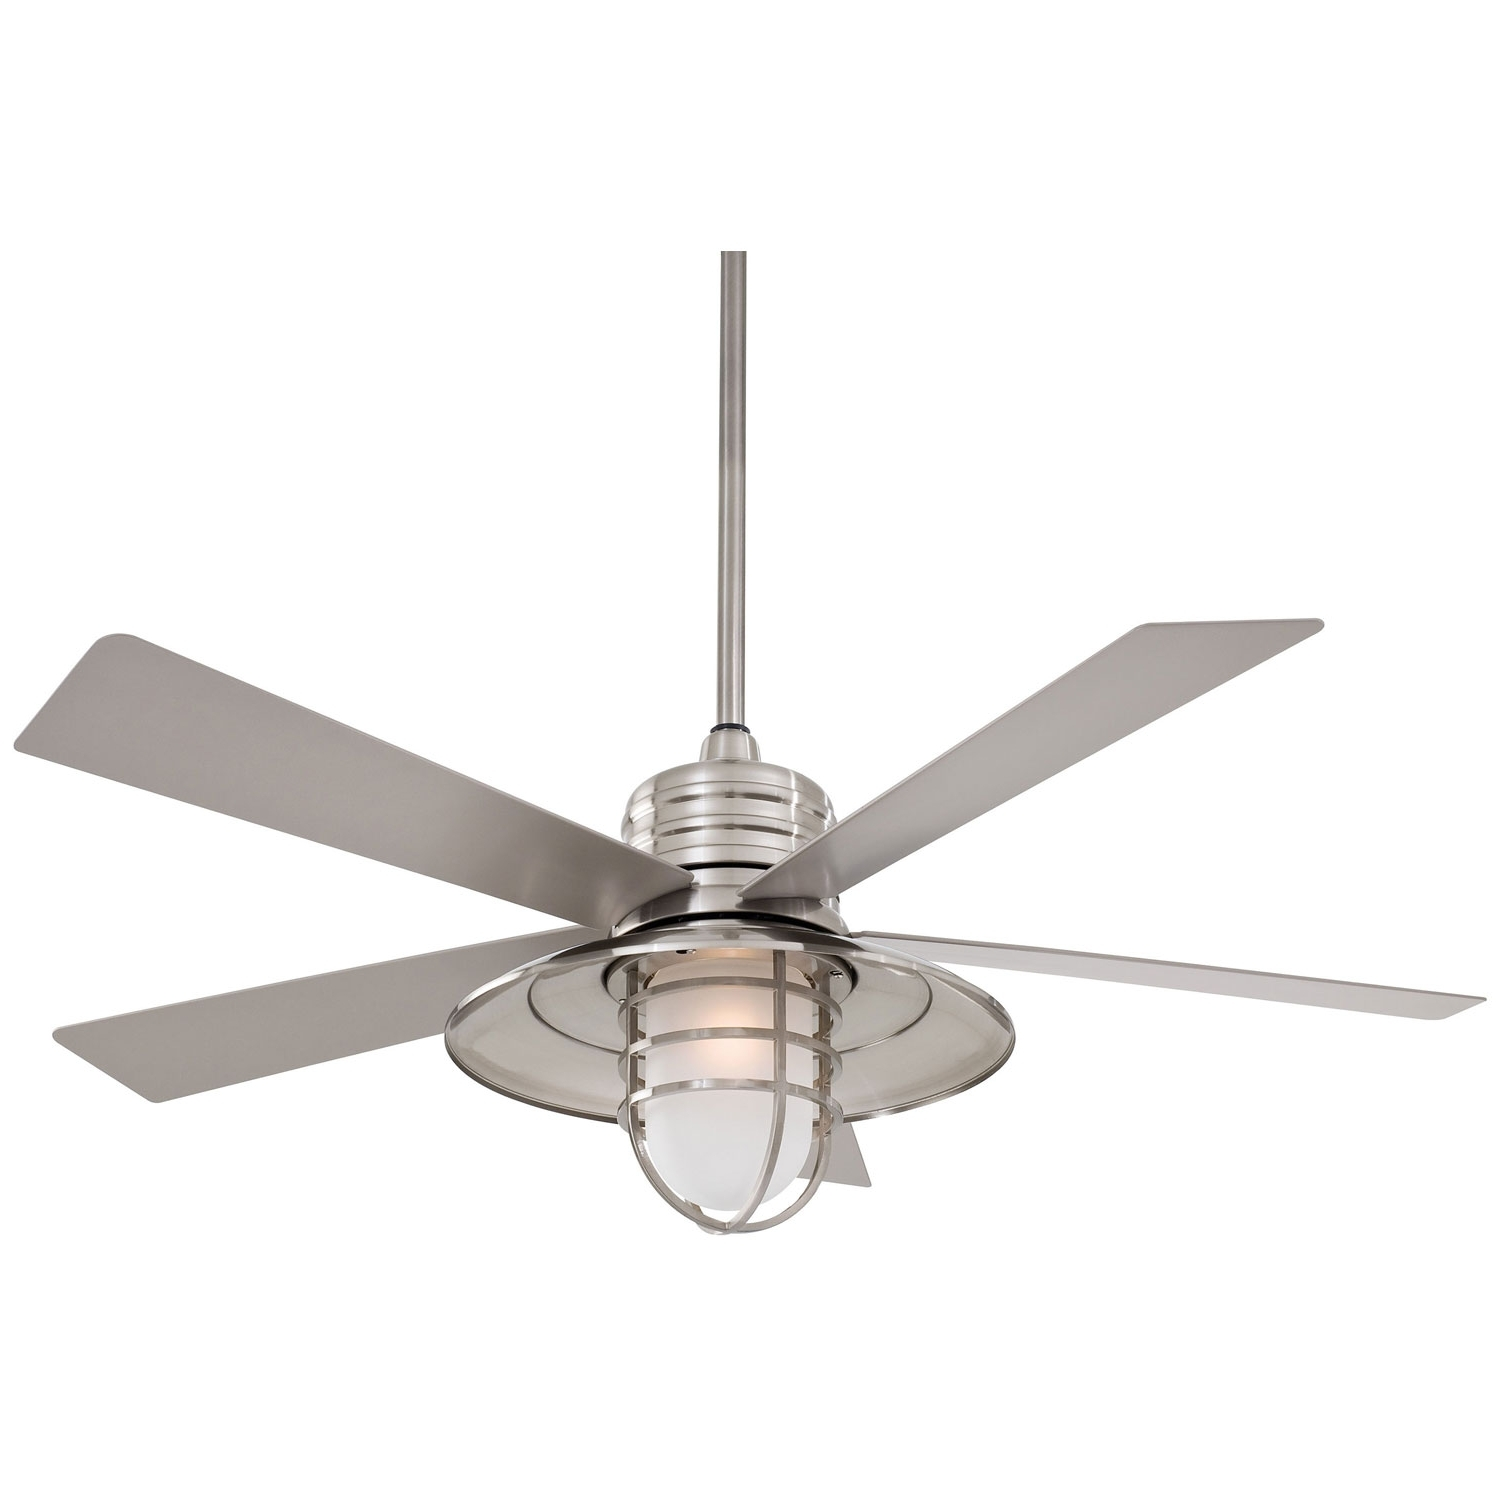 Minka Aire Rainman Brushed Nickel 54 Inch Blade Indoor/outdoor In 2019 Outdoor Ceiling Fans For Wet Areas (View 5 of 20)